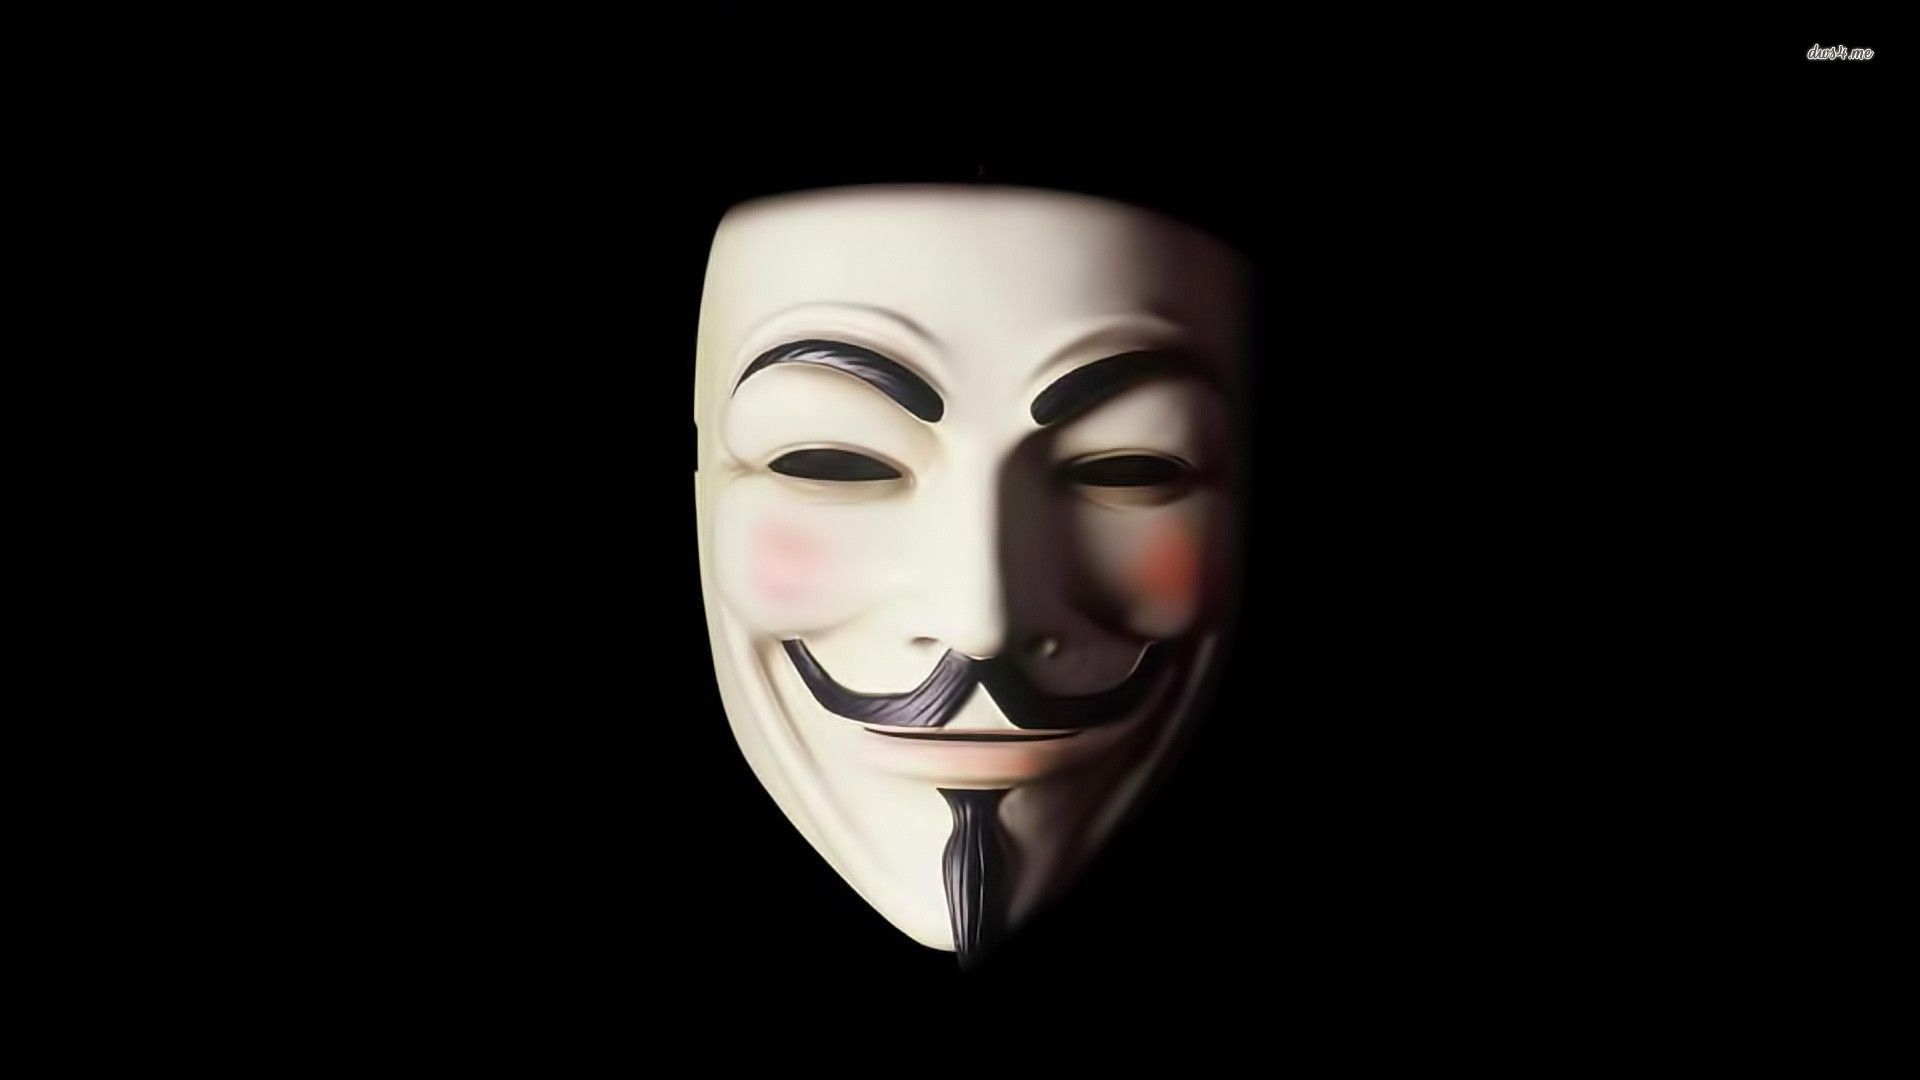 V For Vendetta Wallpapers Hd Wallpaper 1920 1200 Mask Wallpaper